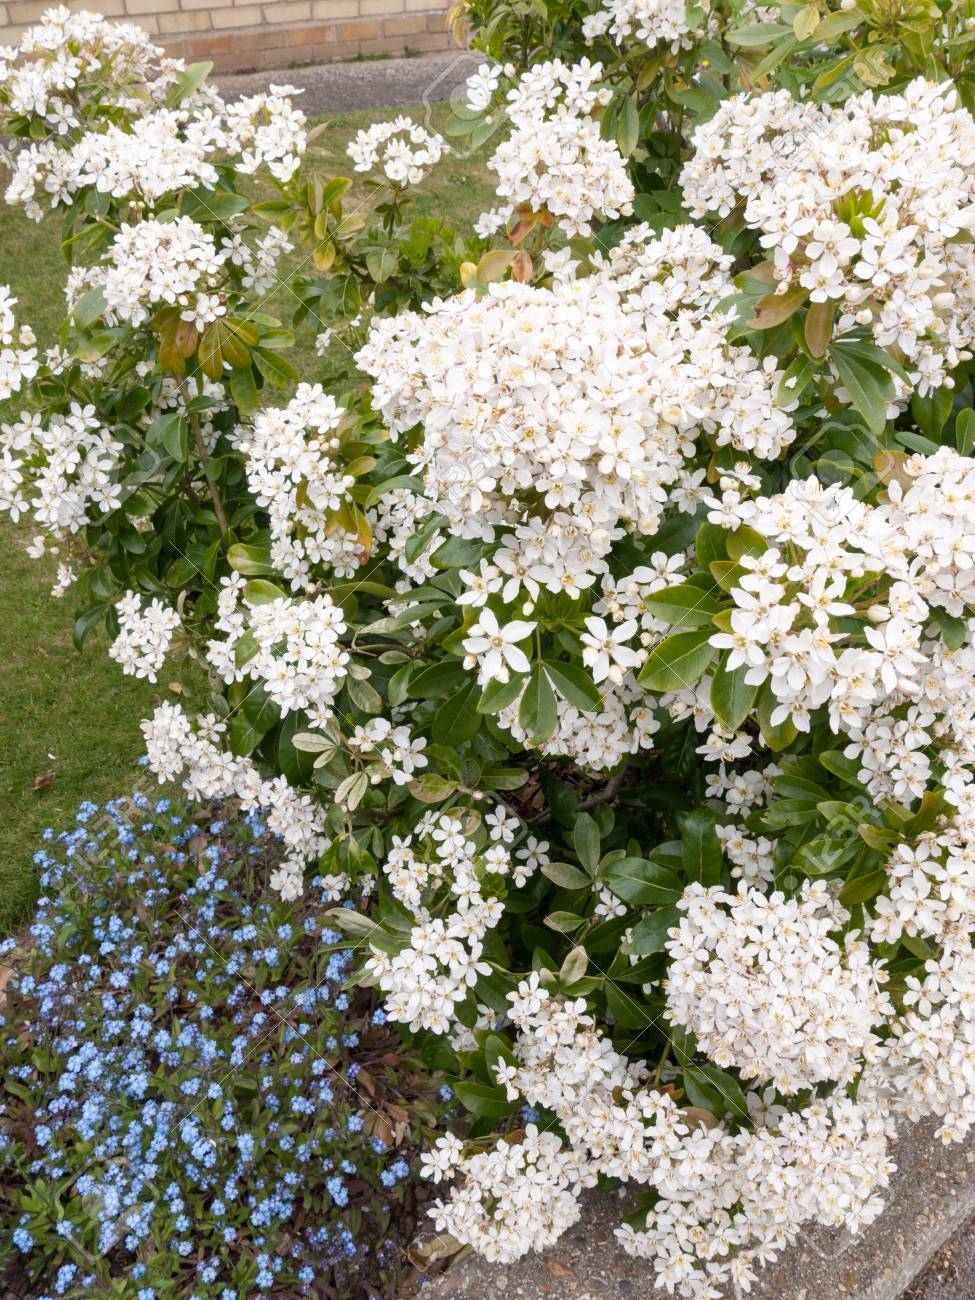 Beautiful Bush Of Bunches Of White Flower Heads In Spring Light